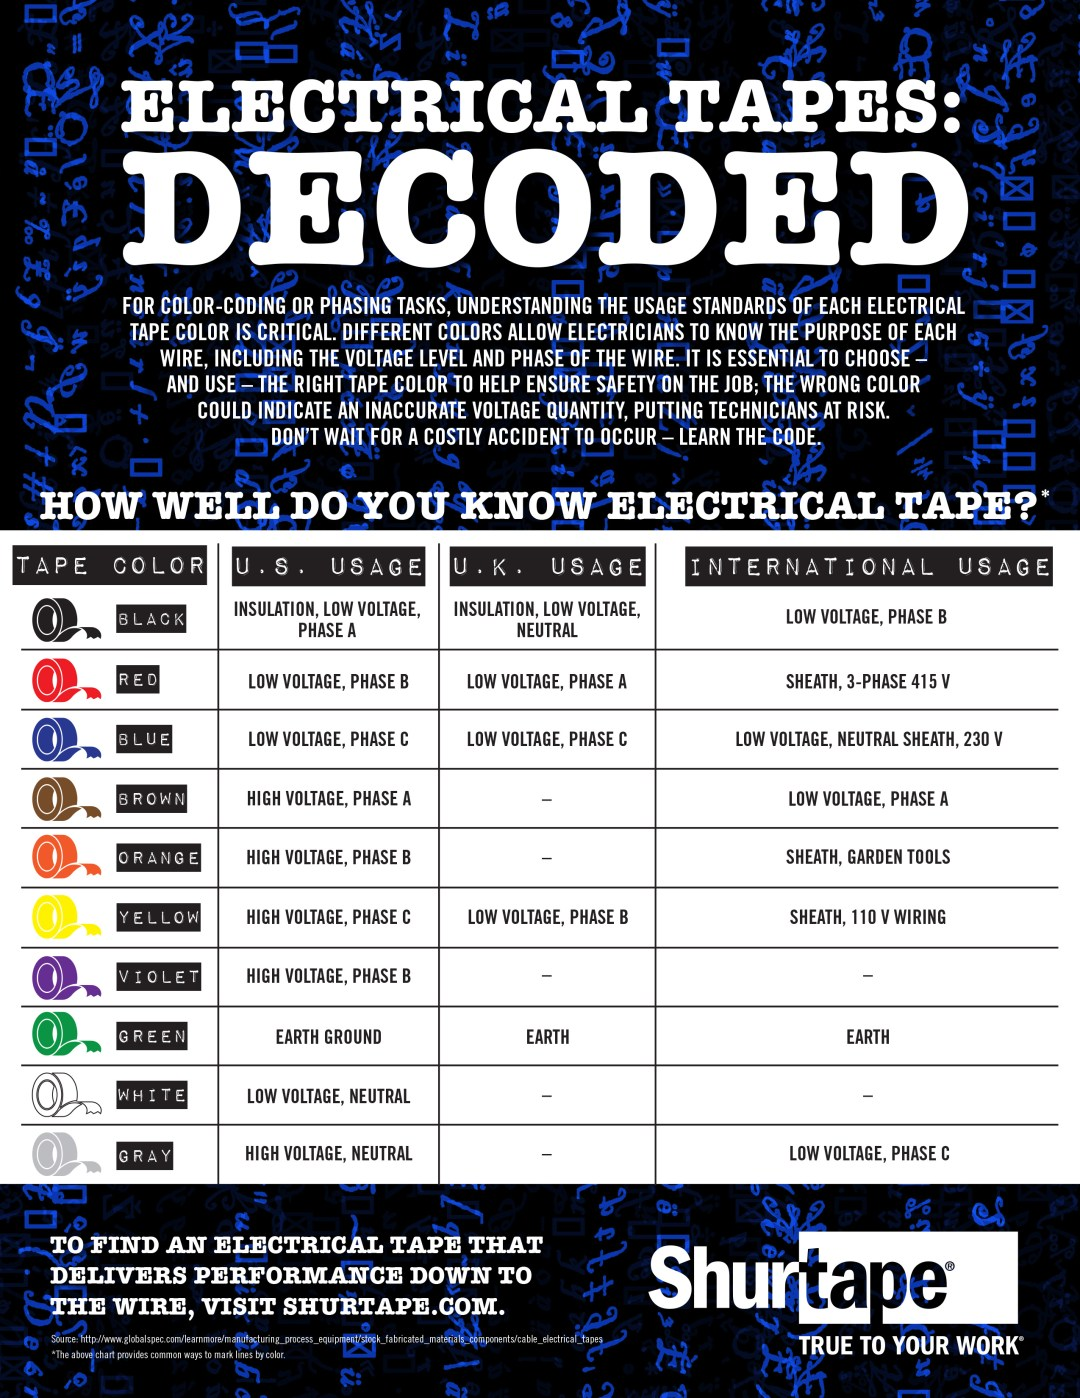 Electrical Tapes Decoded